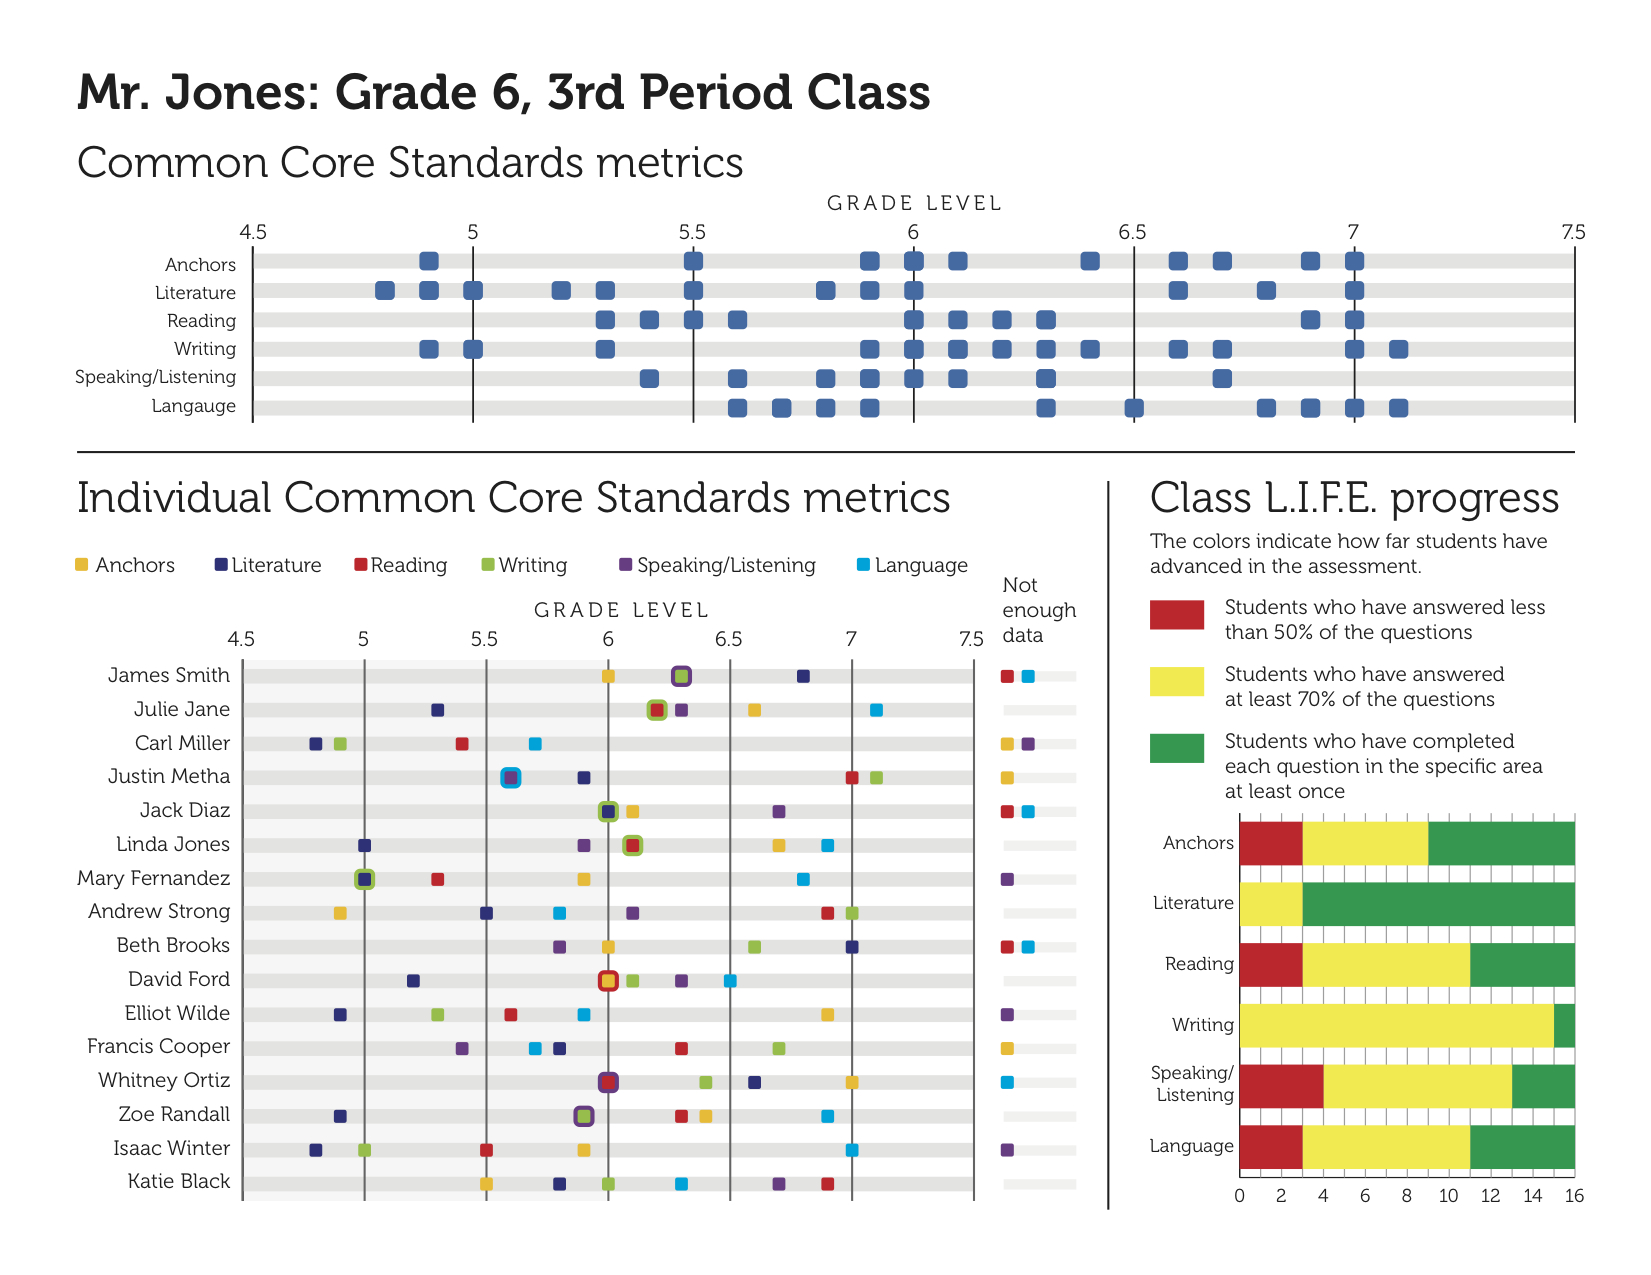 Gates Foundation Learning App Data Visualization